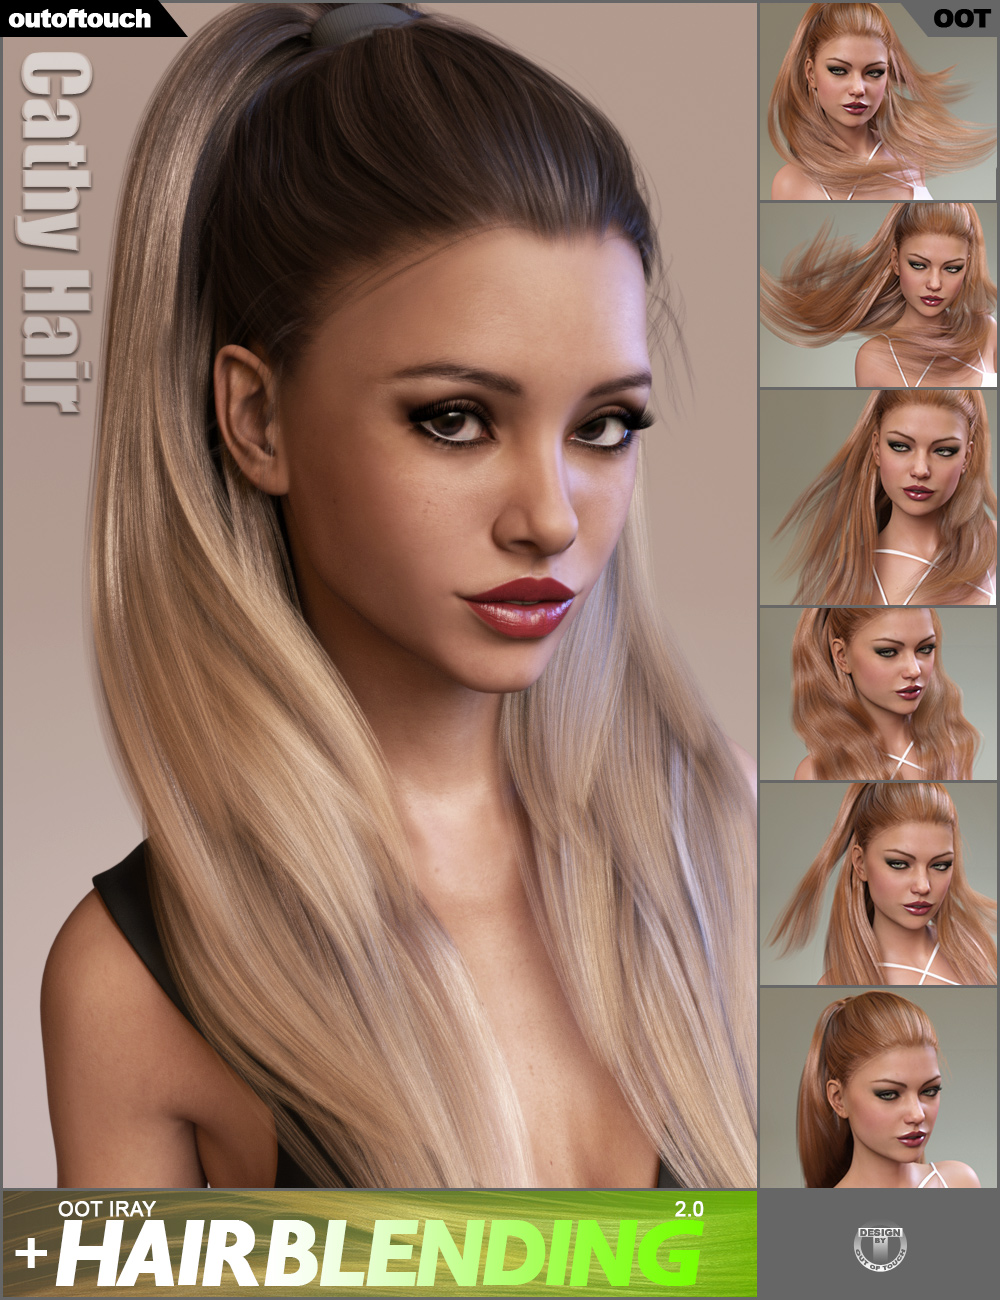 Cathy Hair and OOT Hairblending 2.0 by: outoftouch, 3D Models by Daz 3D